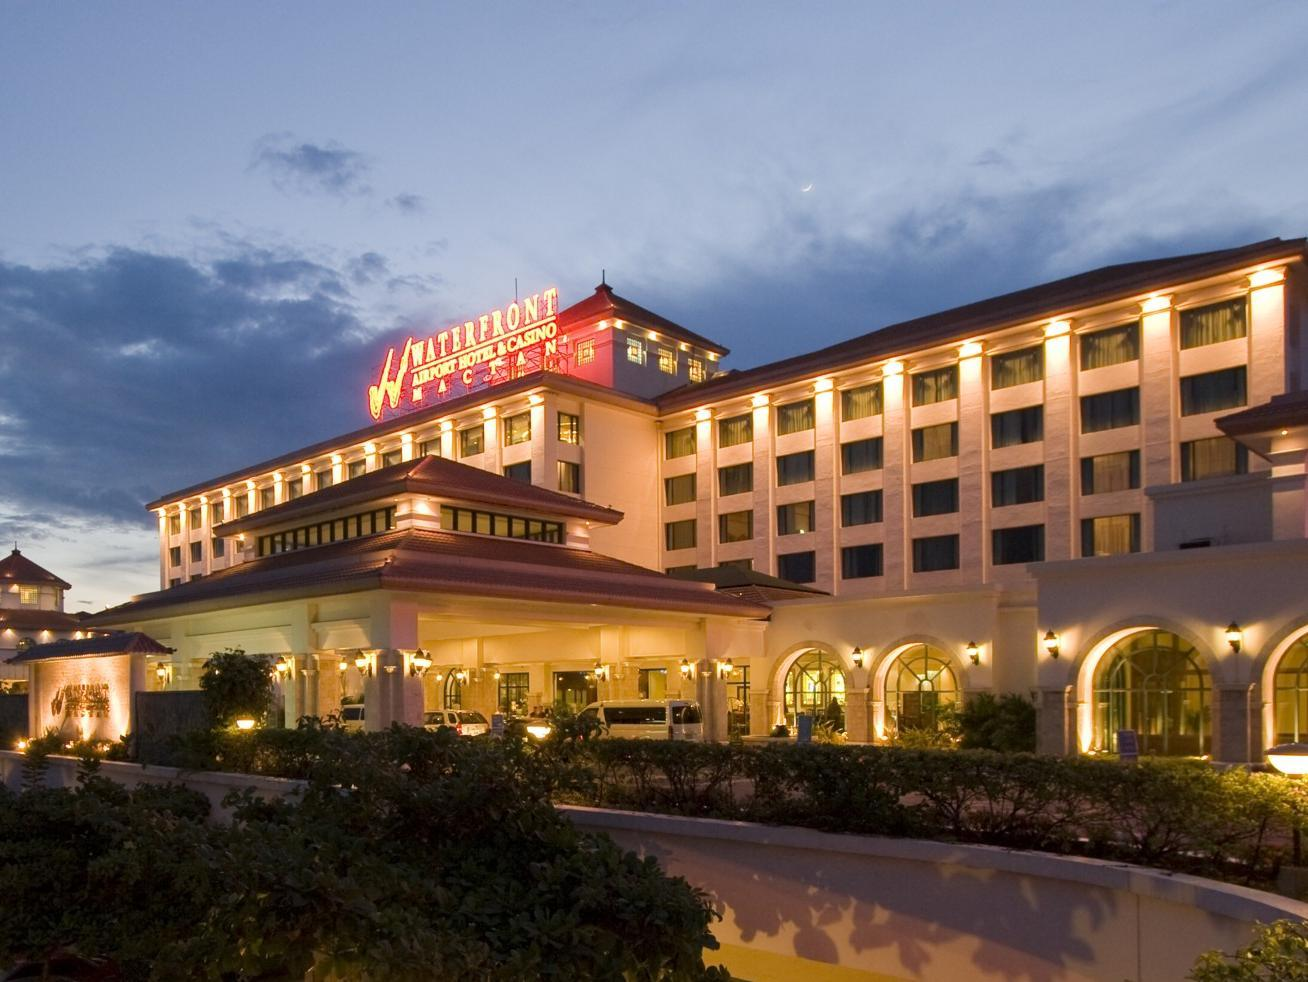 Waterfront Airport Hotel and Casino Cebu City